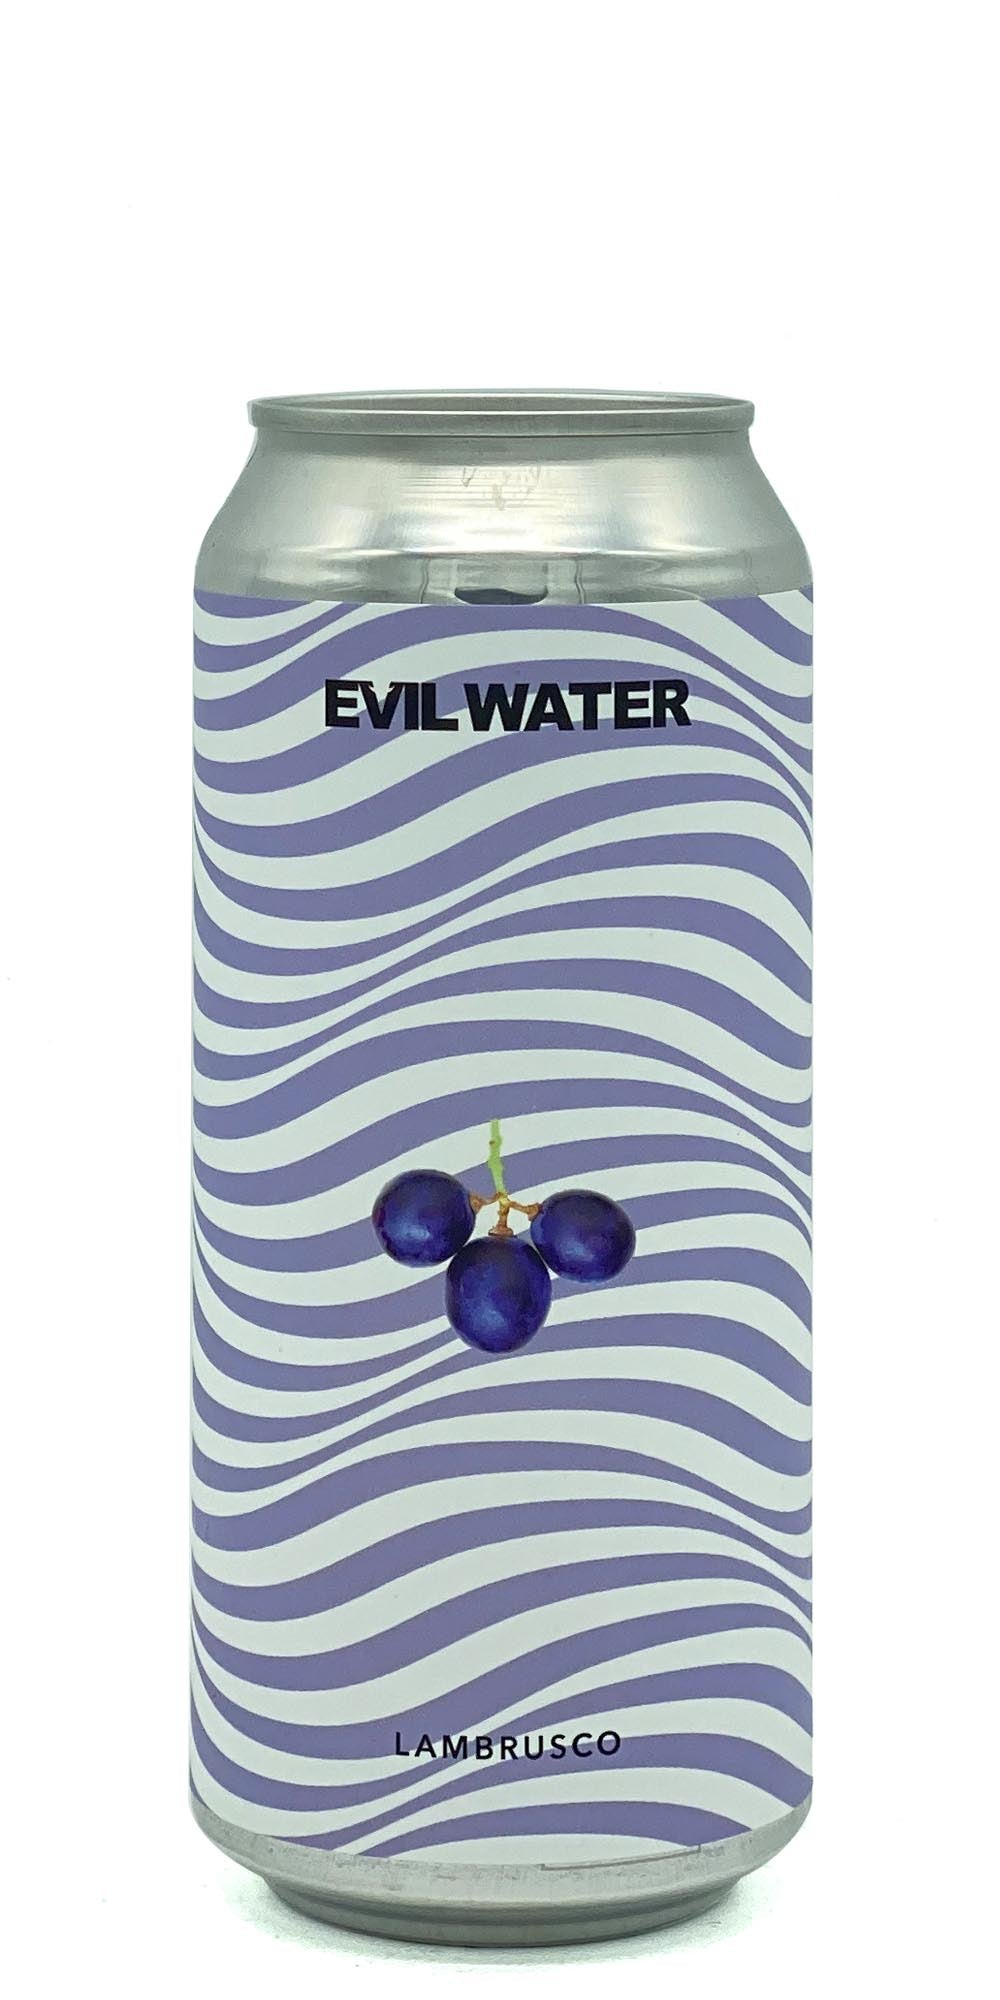 Evil Water - Lambrusco - Drikbeer - Order Craft Beer Online